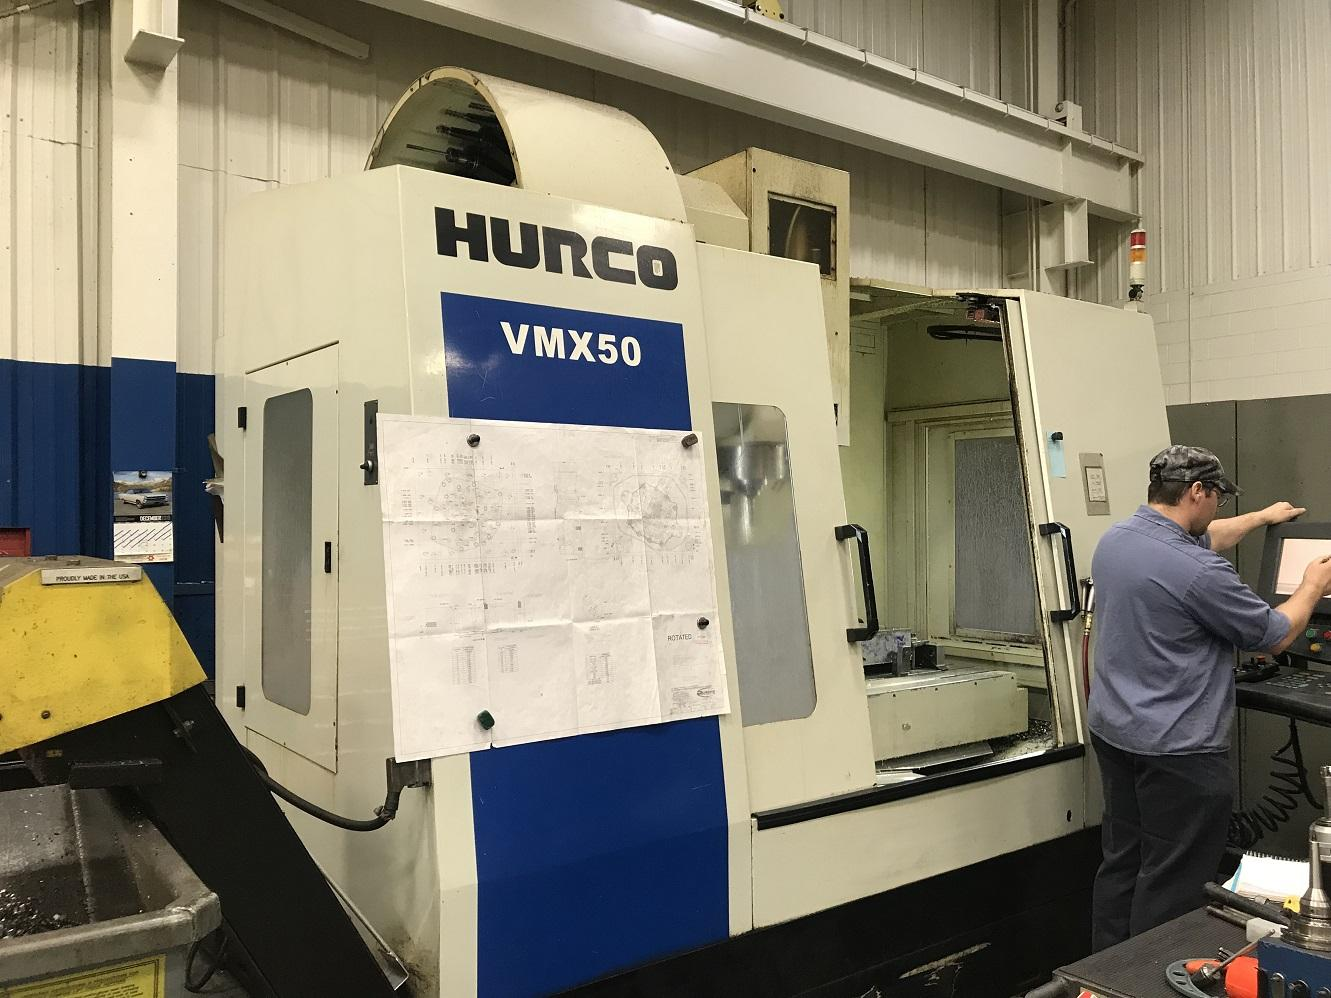 "Hurco VMX50, WinMax, 50""/24""/24"" Travels, 8K Spindle, 50 Taper, Coolant Thru Spindle,  30 ATC, 25 Horsepower, NC Productivity Pkg, Chiller, Many Control Options, New Spindle ('17), New Chiller ('16), 2011"